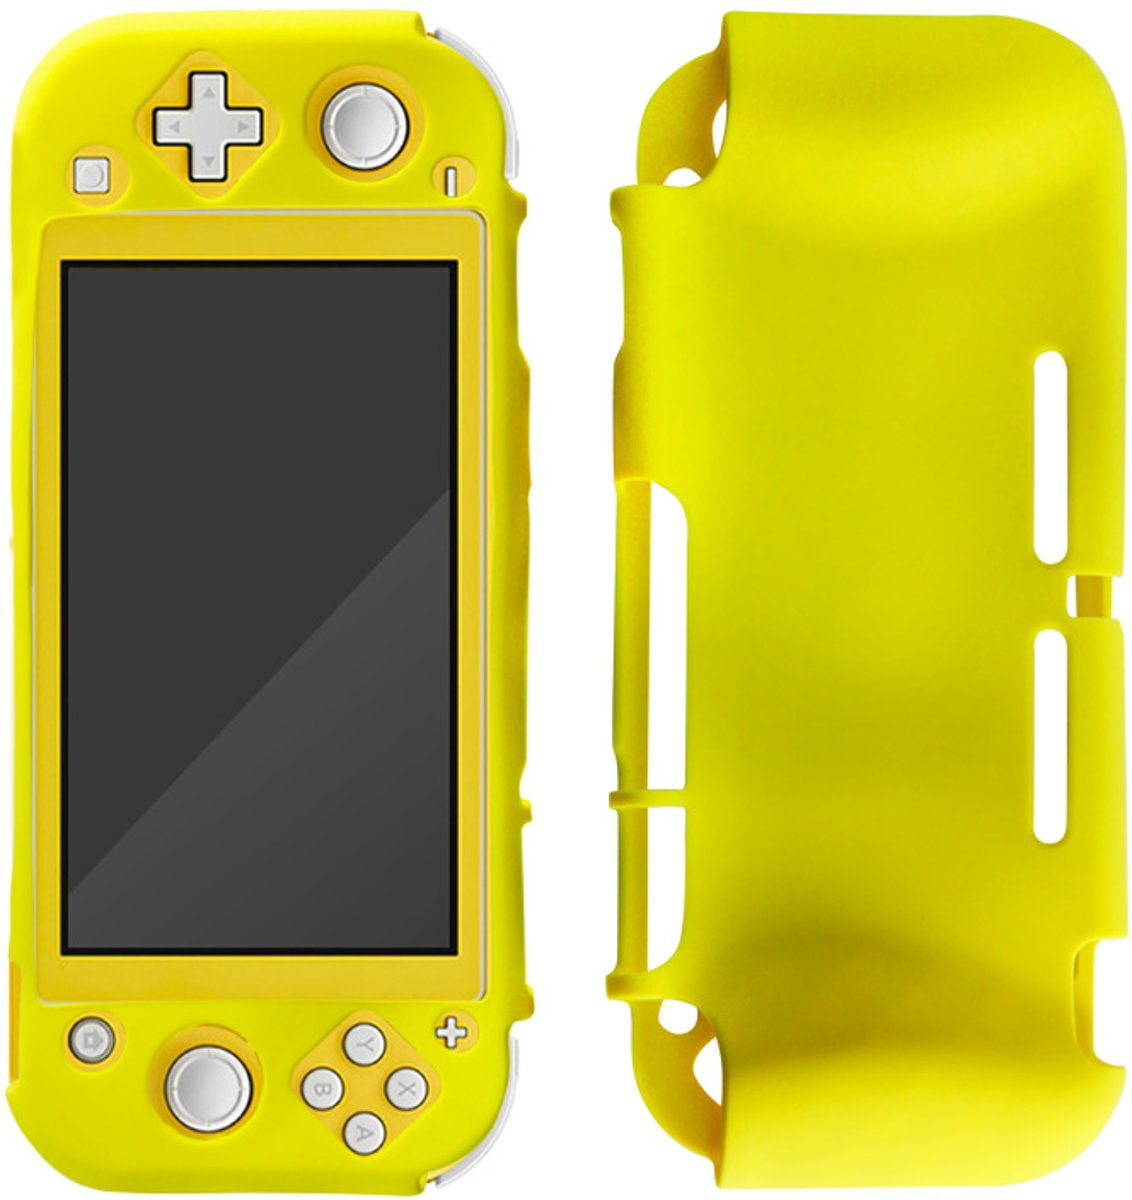 Nintendo Switch Lite - Siliconen case Geel